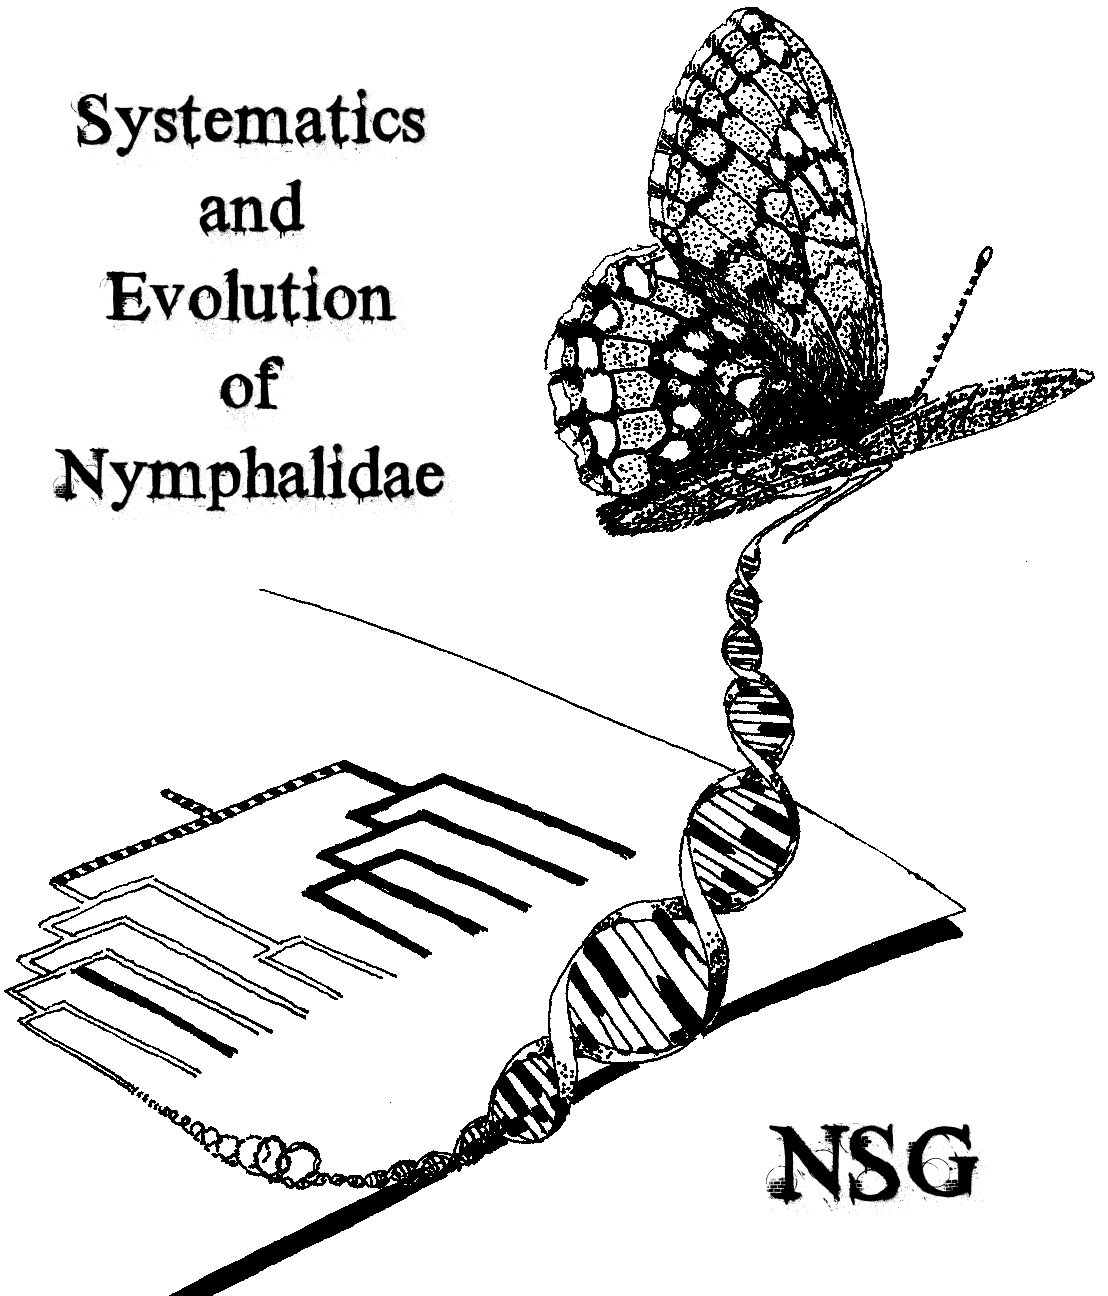 Systematics of Nymphalidae